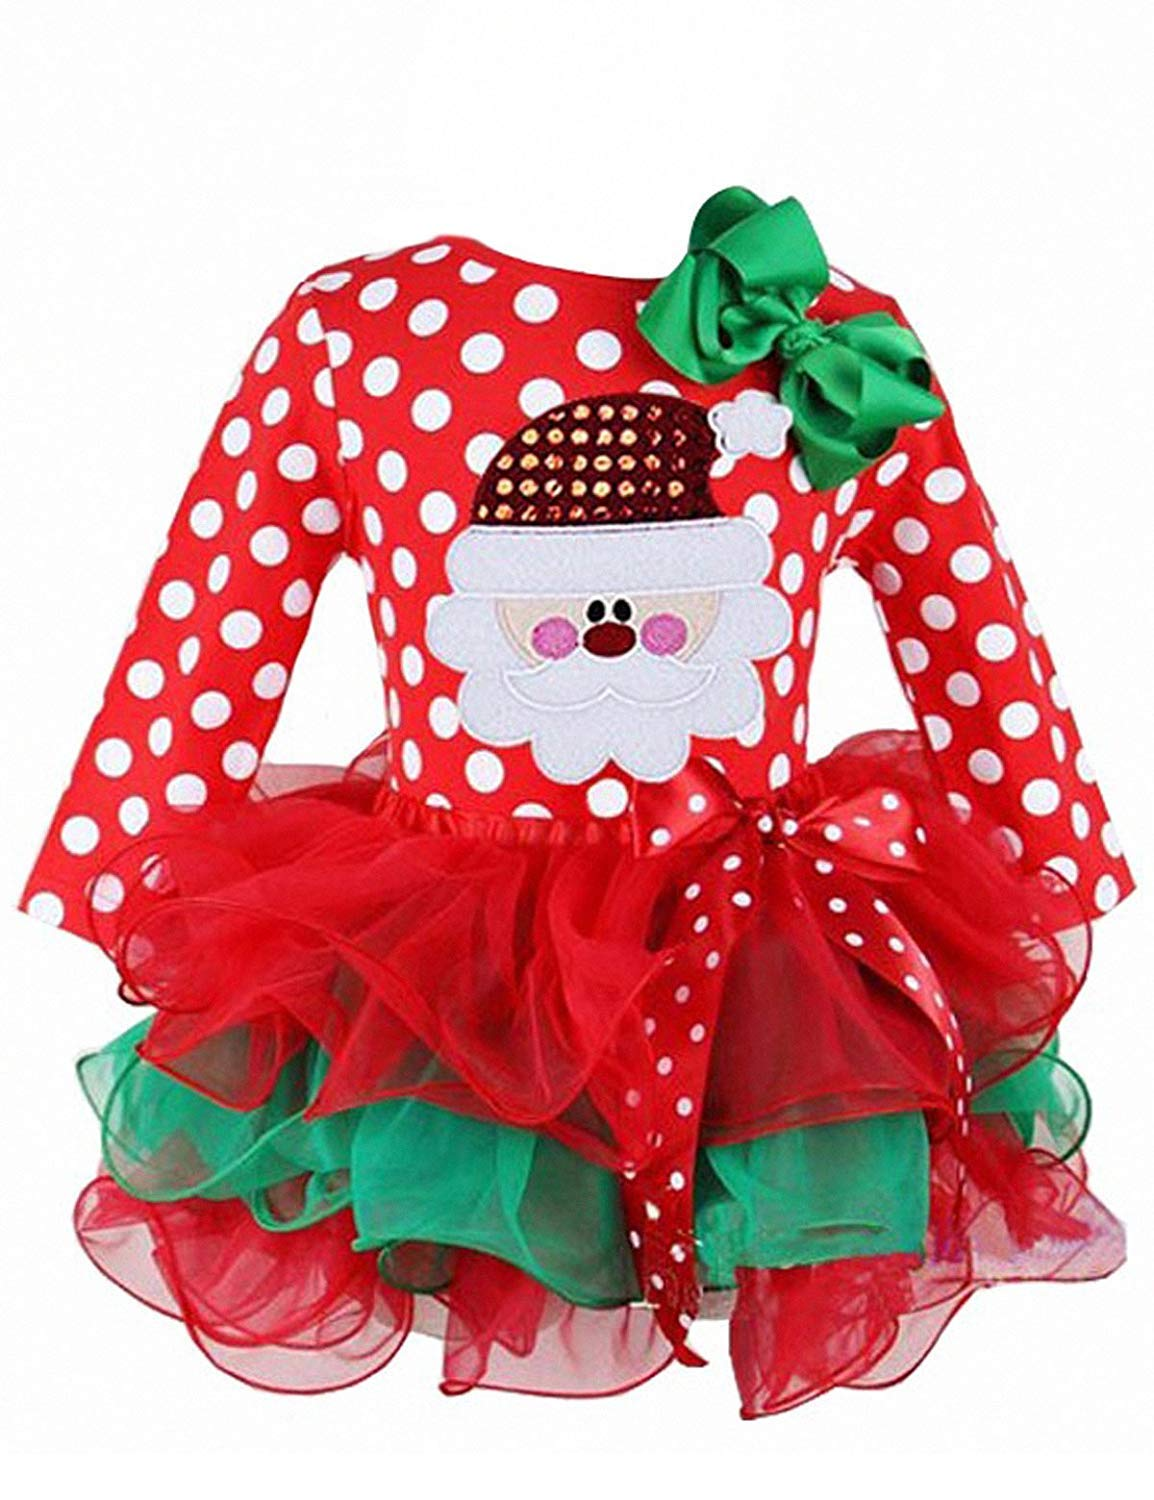 NNJXD Girl Santa Claus Pattern Polka Dot Bow Red Dress Size 2-3 Years Red&White